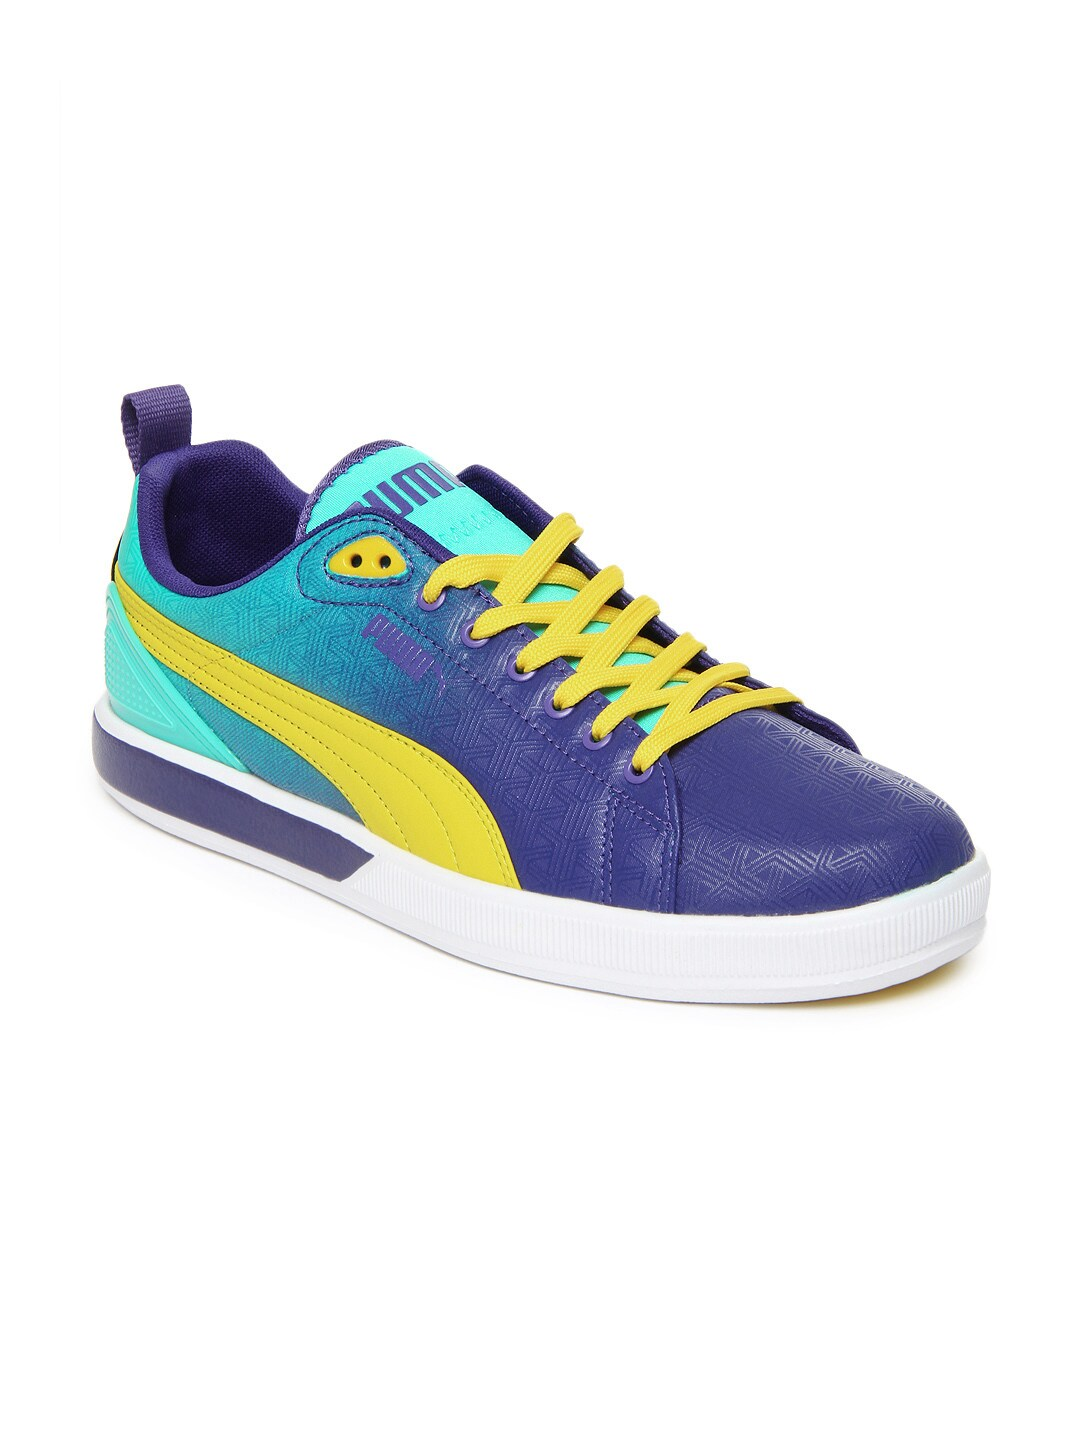 Search Results for: Nike India Buy Nike Shoes T Shirts Bags Deo